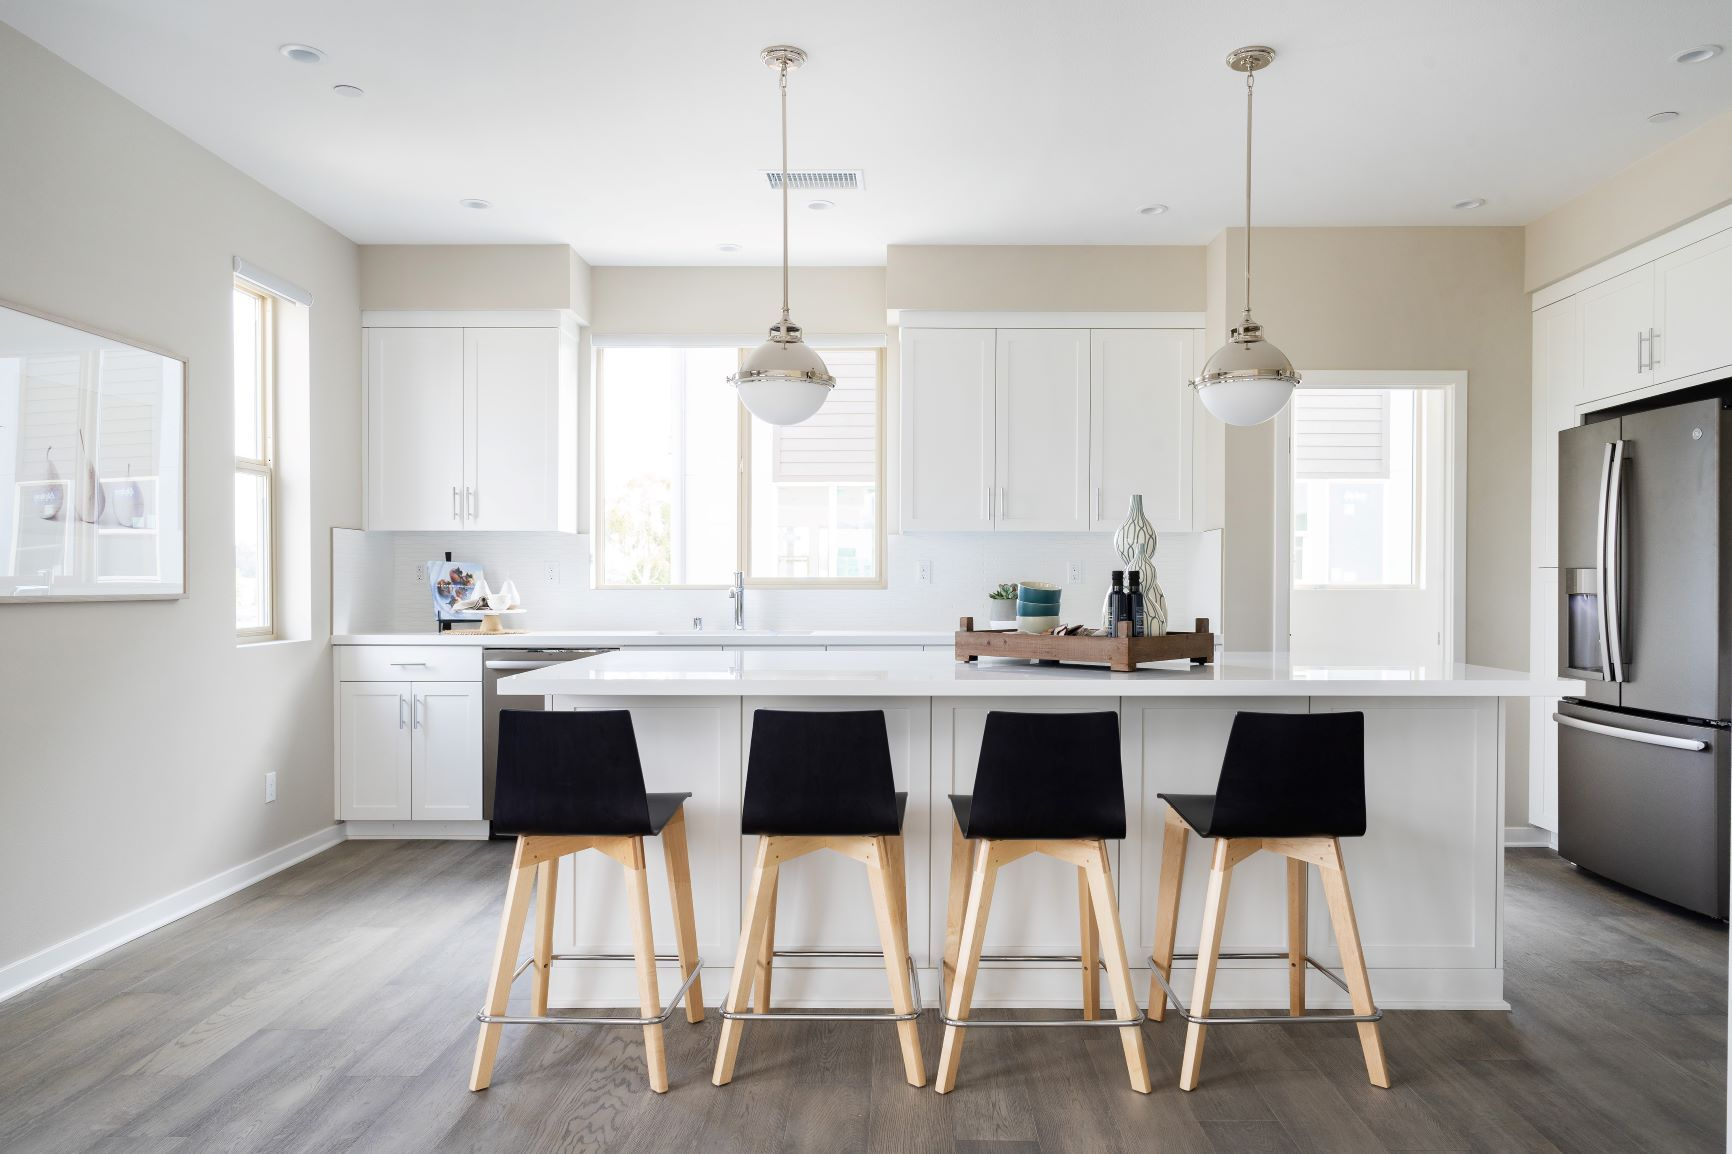 Kitchen featured in the Residence C By Intracorp Companies in Orange County, CA